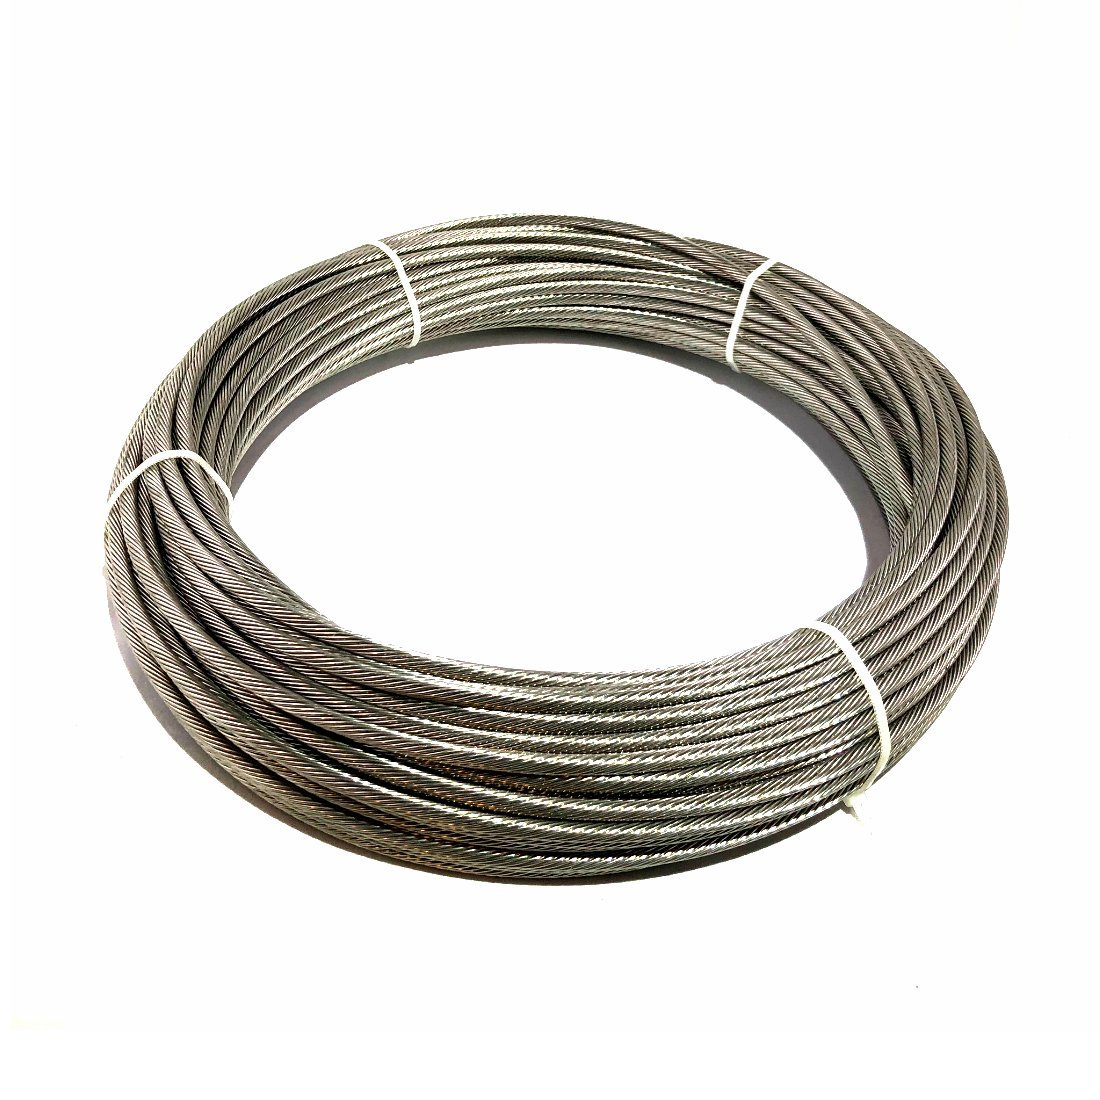 3/16'' Cable 1×19 Strand - T316 Stainless Steel - 100′ Feet for Cable Railings